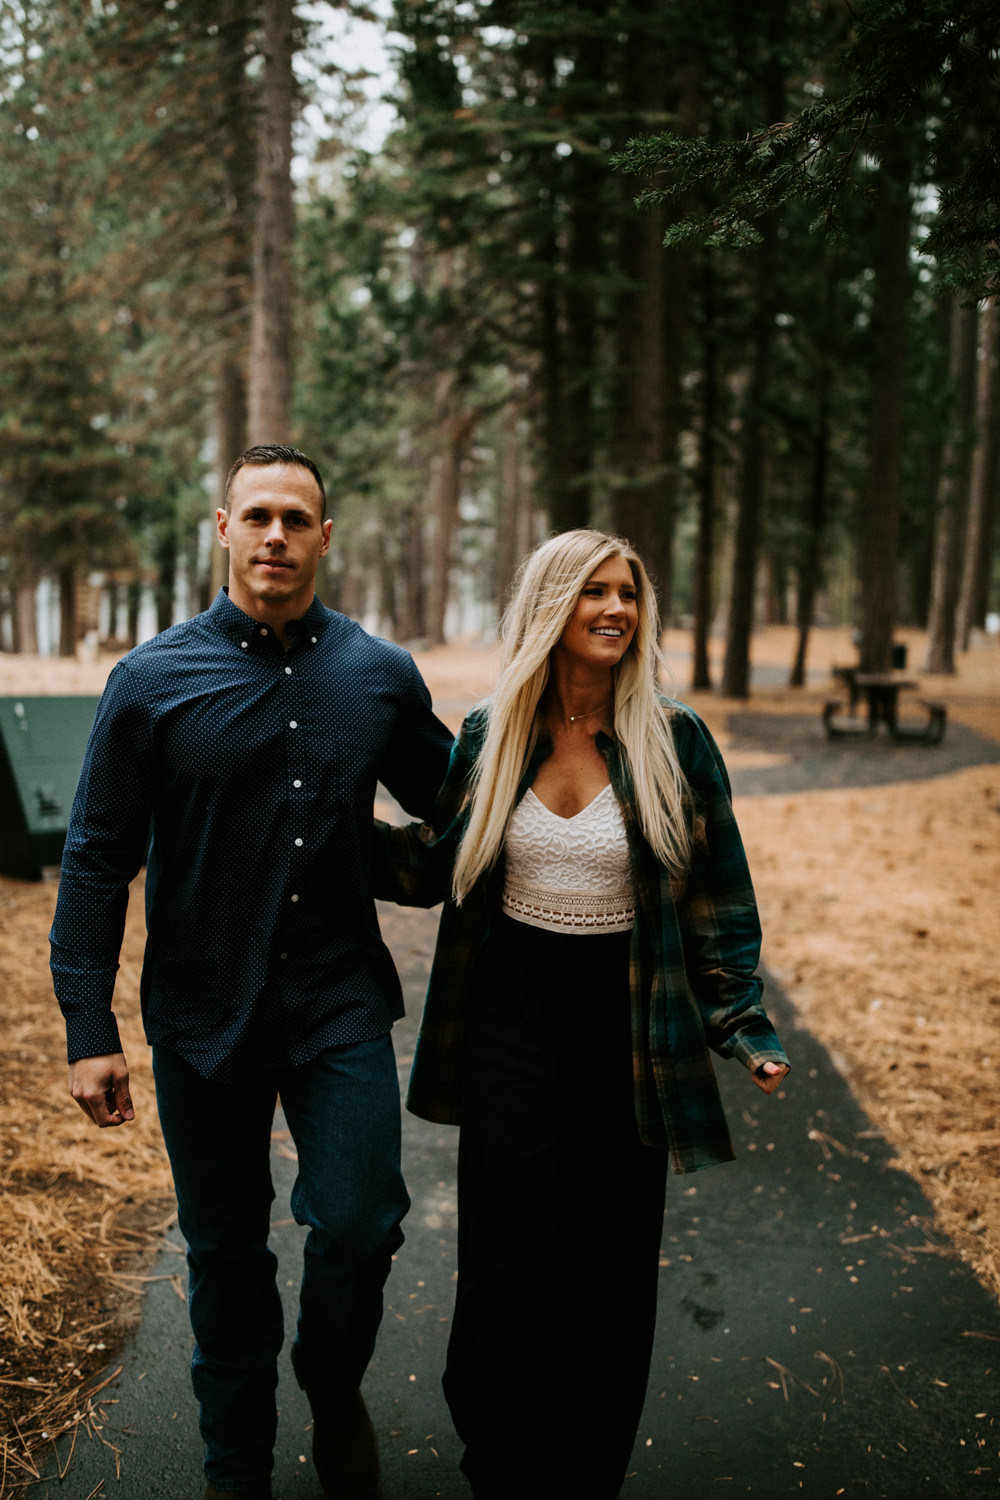 couple-intimate-engagement-session-northern-california-35.jpg